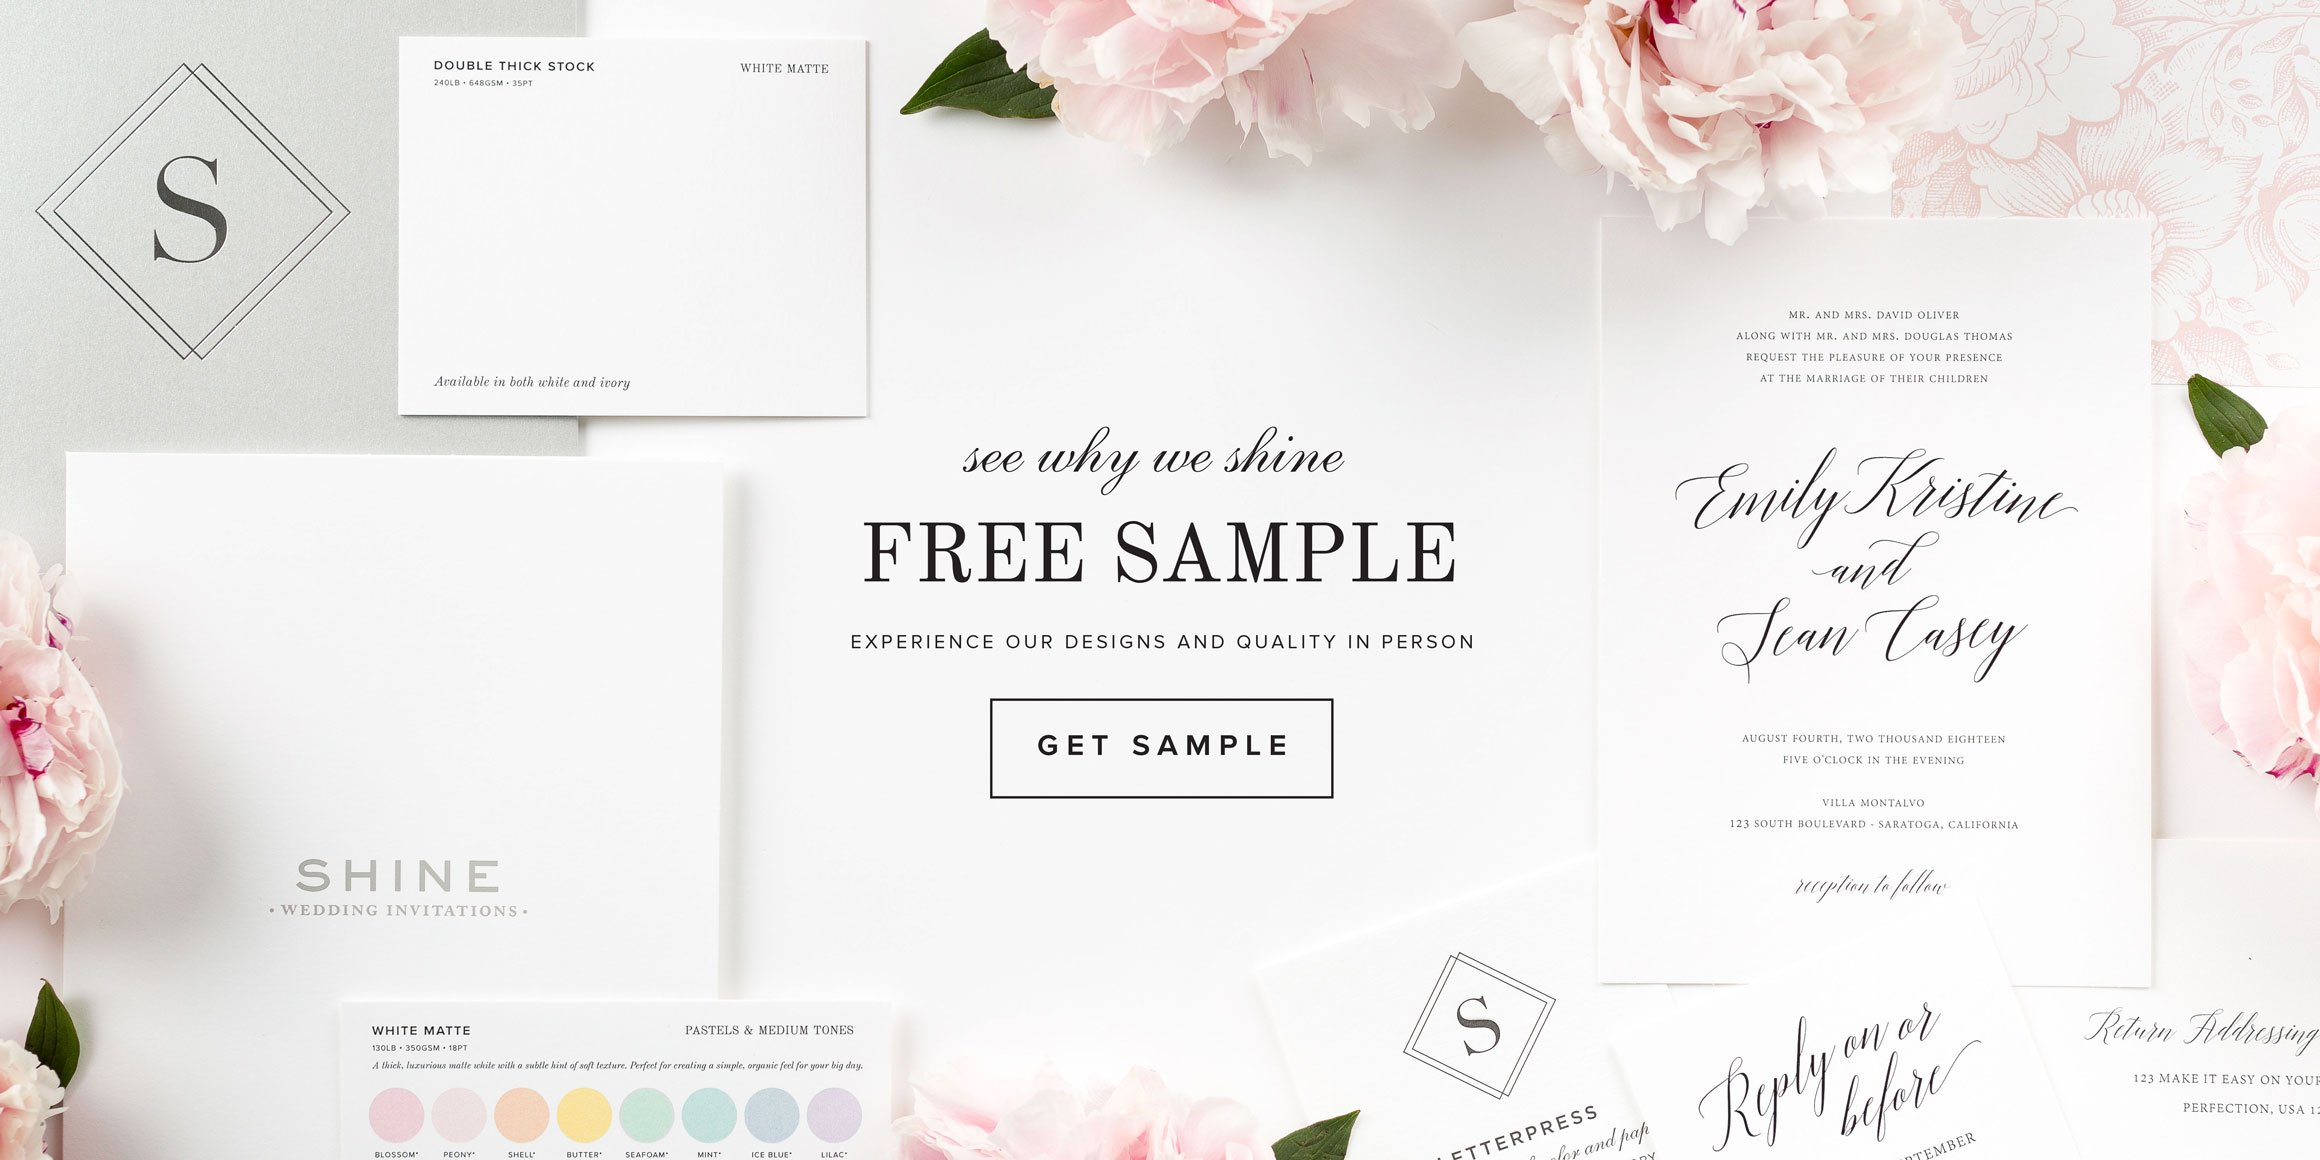 free sample of wedding invitations